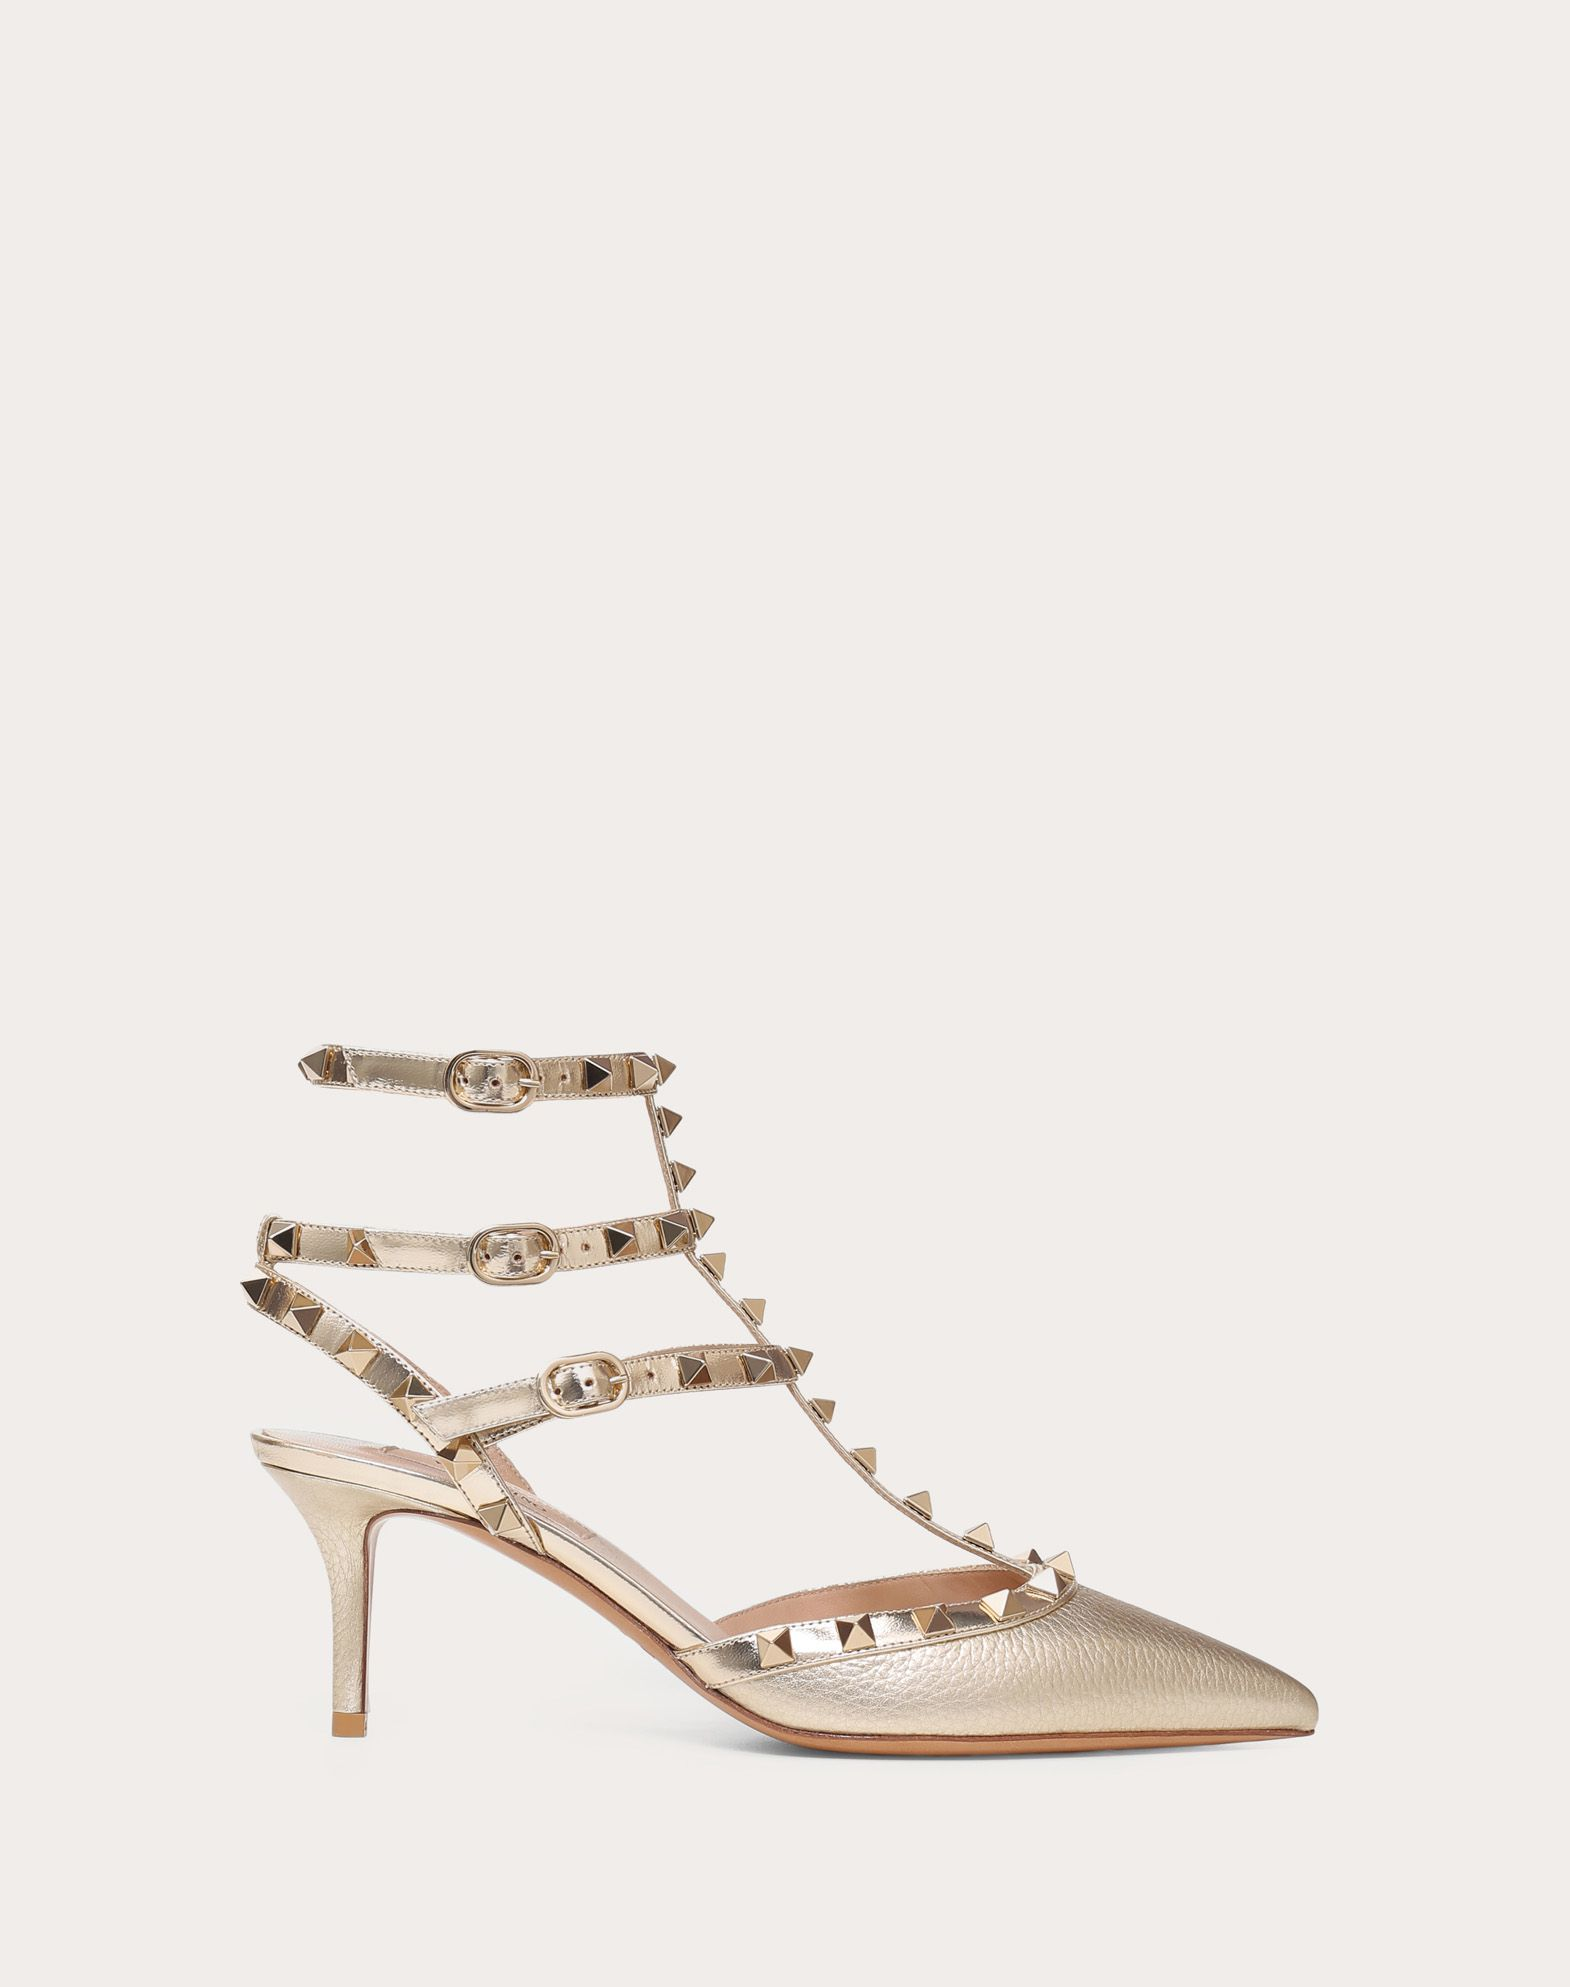 Metallic Rockstud caged Pump 65mm